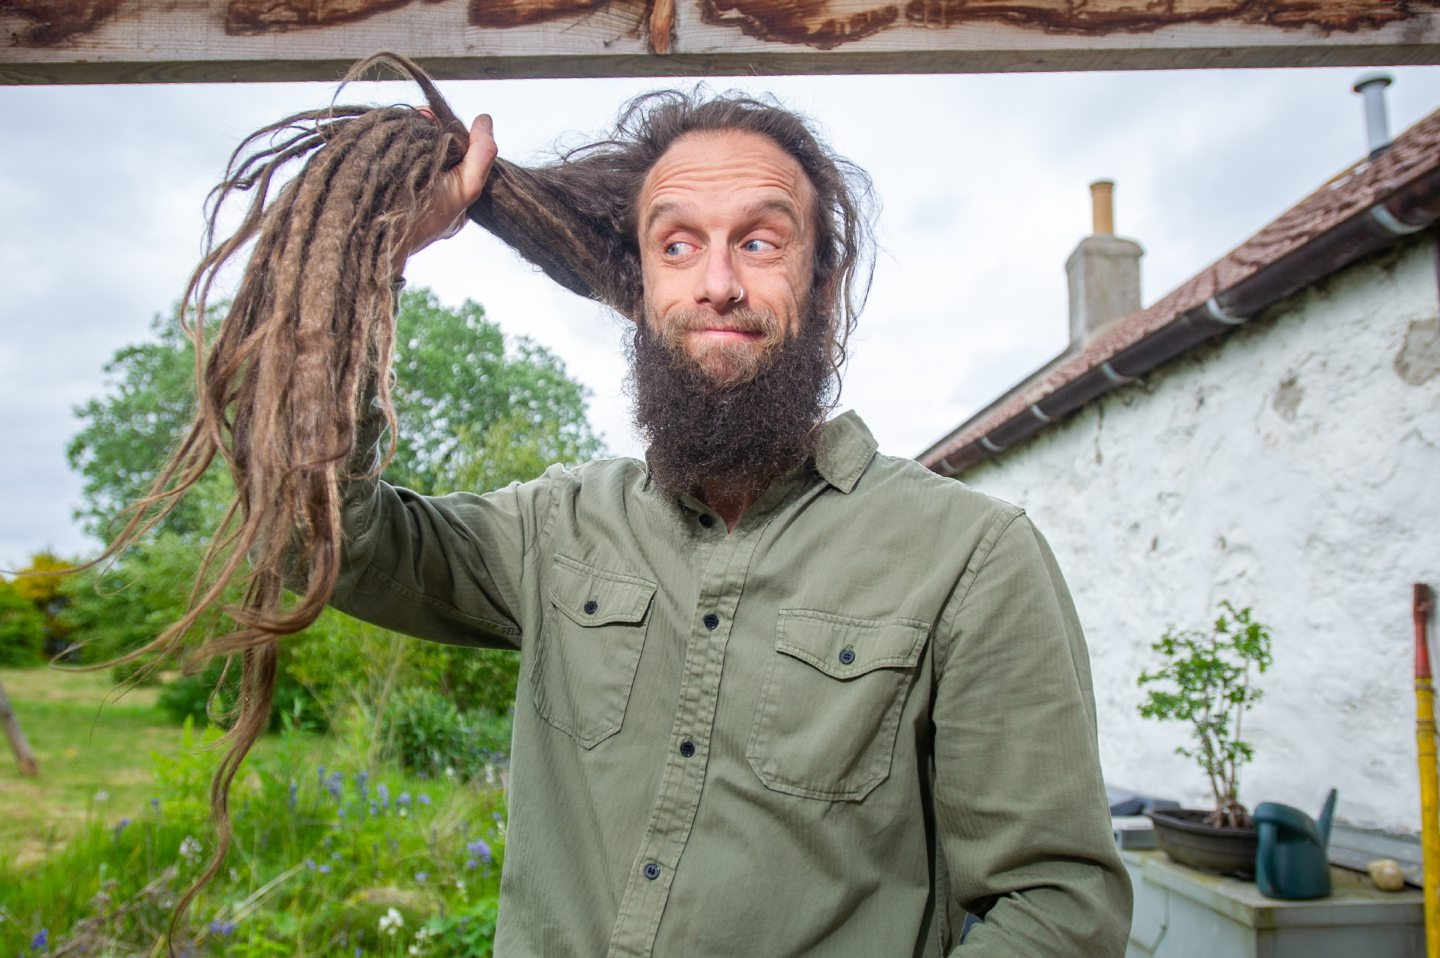 Owen Pilgrim is cutting off his dreadlocks for charity.